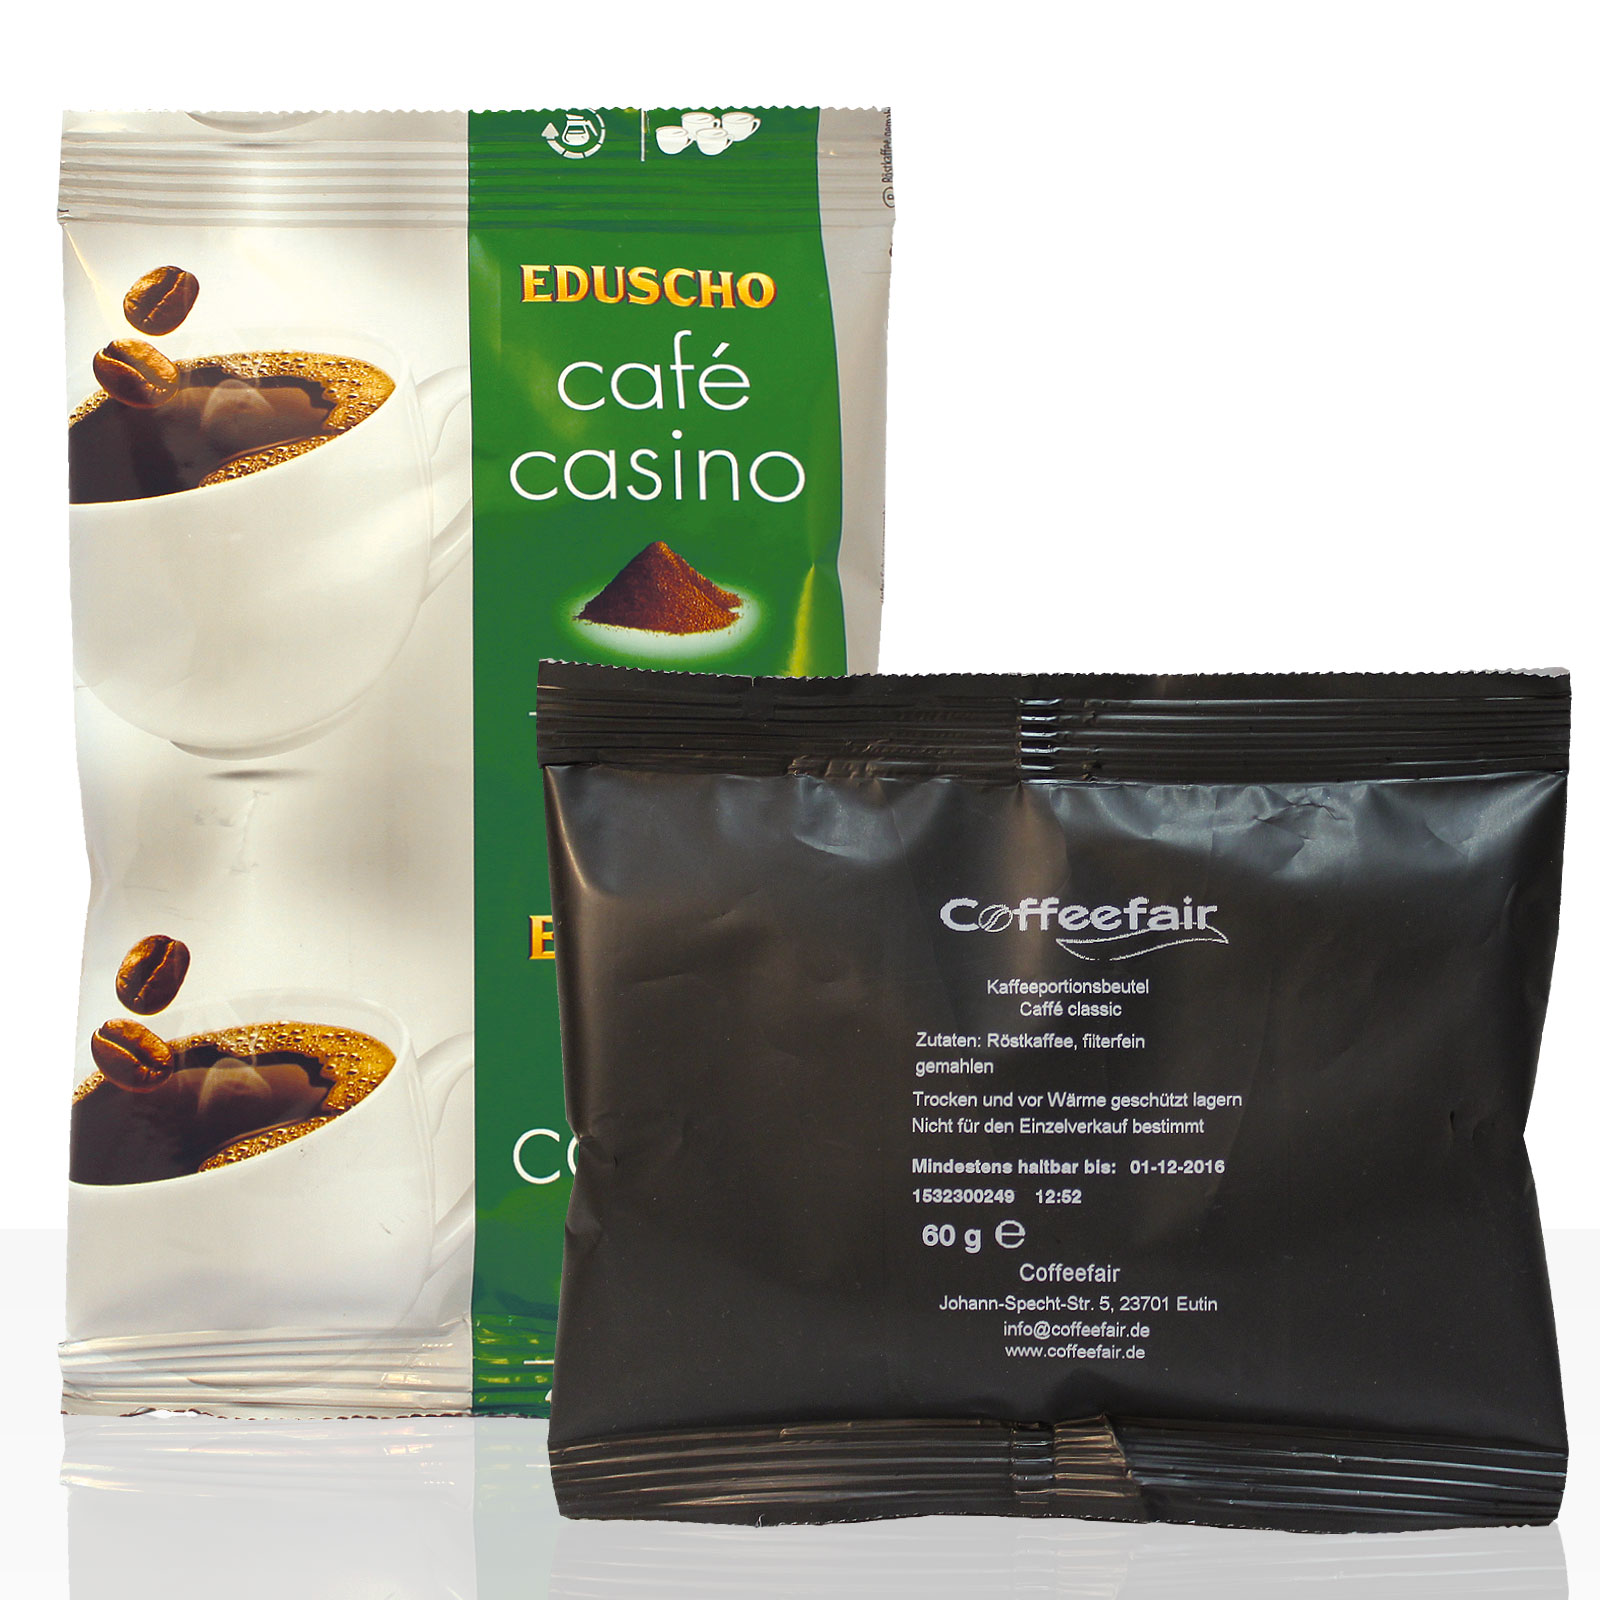 Tchibo / Eduscho Cafe Casino Plus 80 x 60g + Coffeefair Filterkaffee 10 x 60g